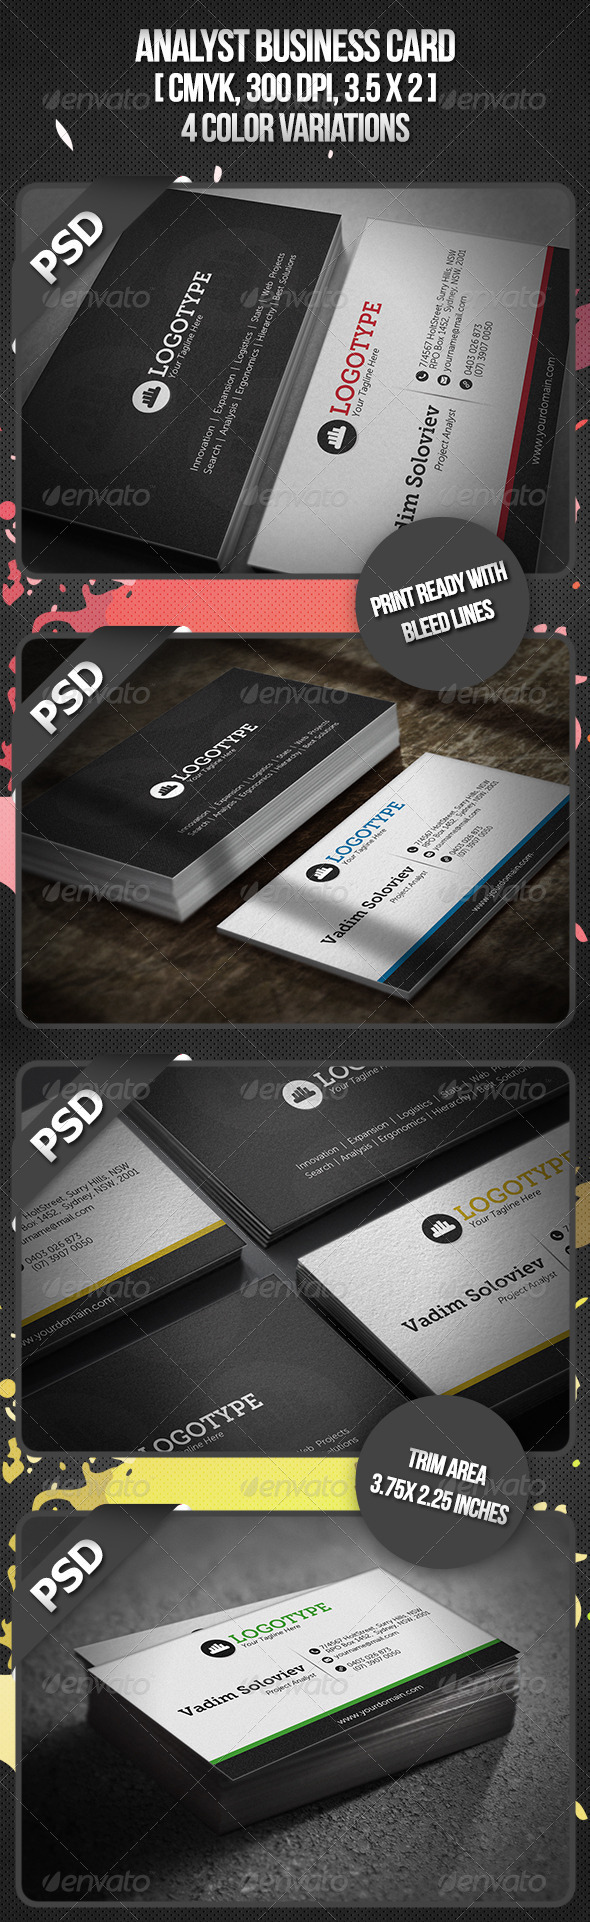 GraphicRiver Analyst Business Card 3034541